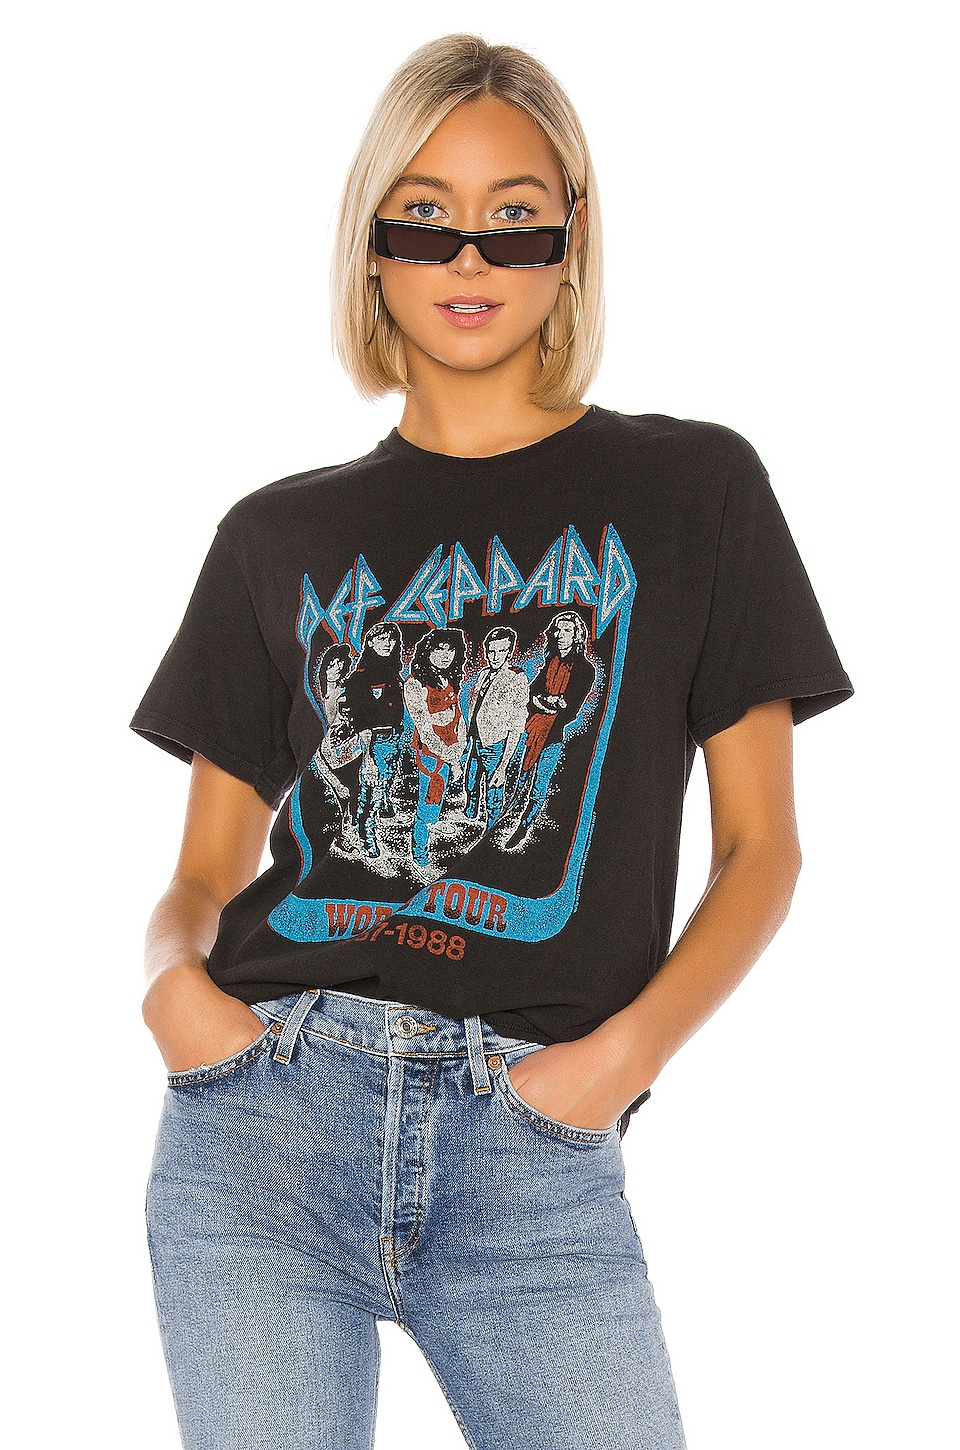 Junk Food Def Leppard World Tour in Vintage Black